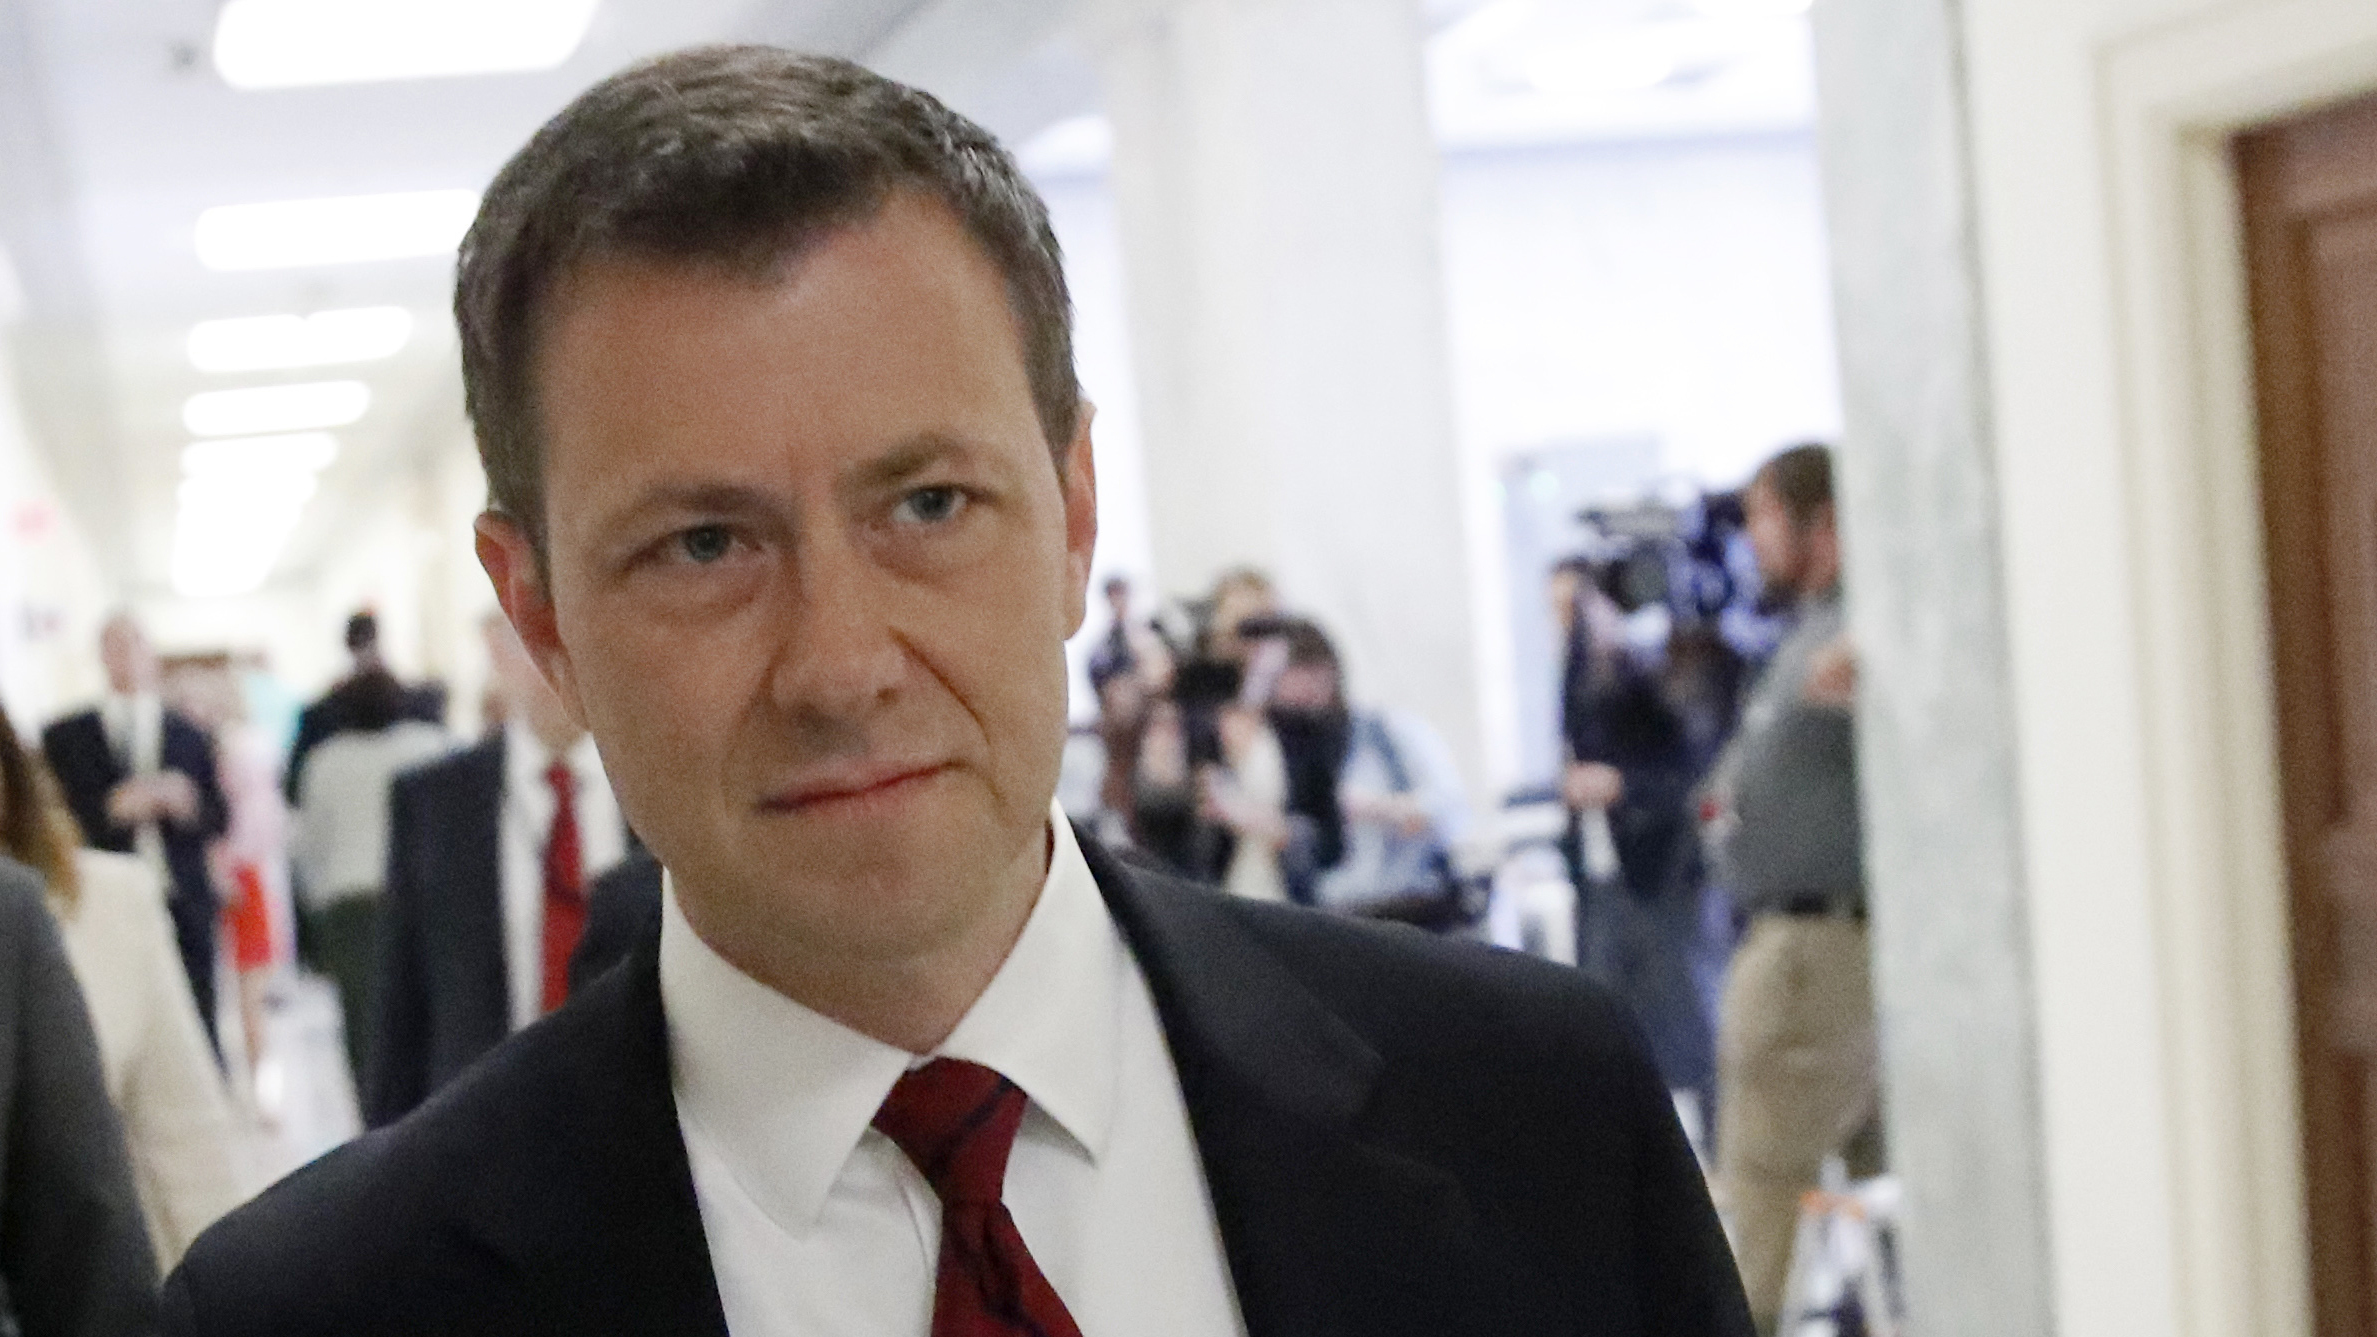 Steve Bannon must testify to counter Peter Strzok testimony, House Democrats demand